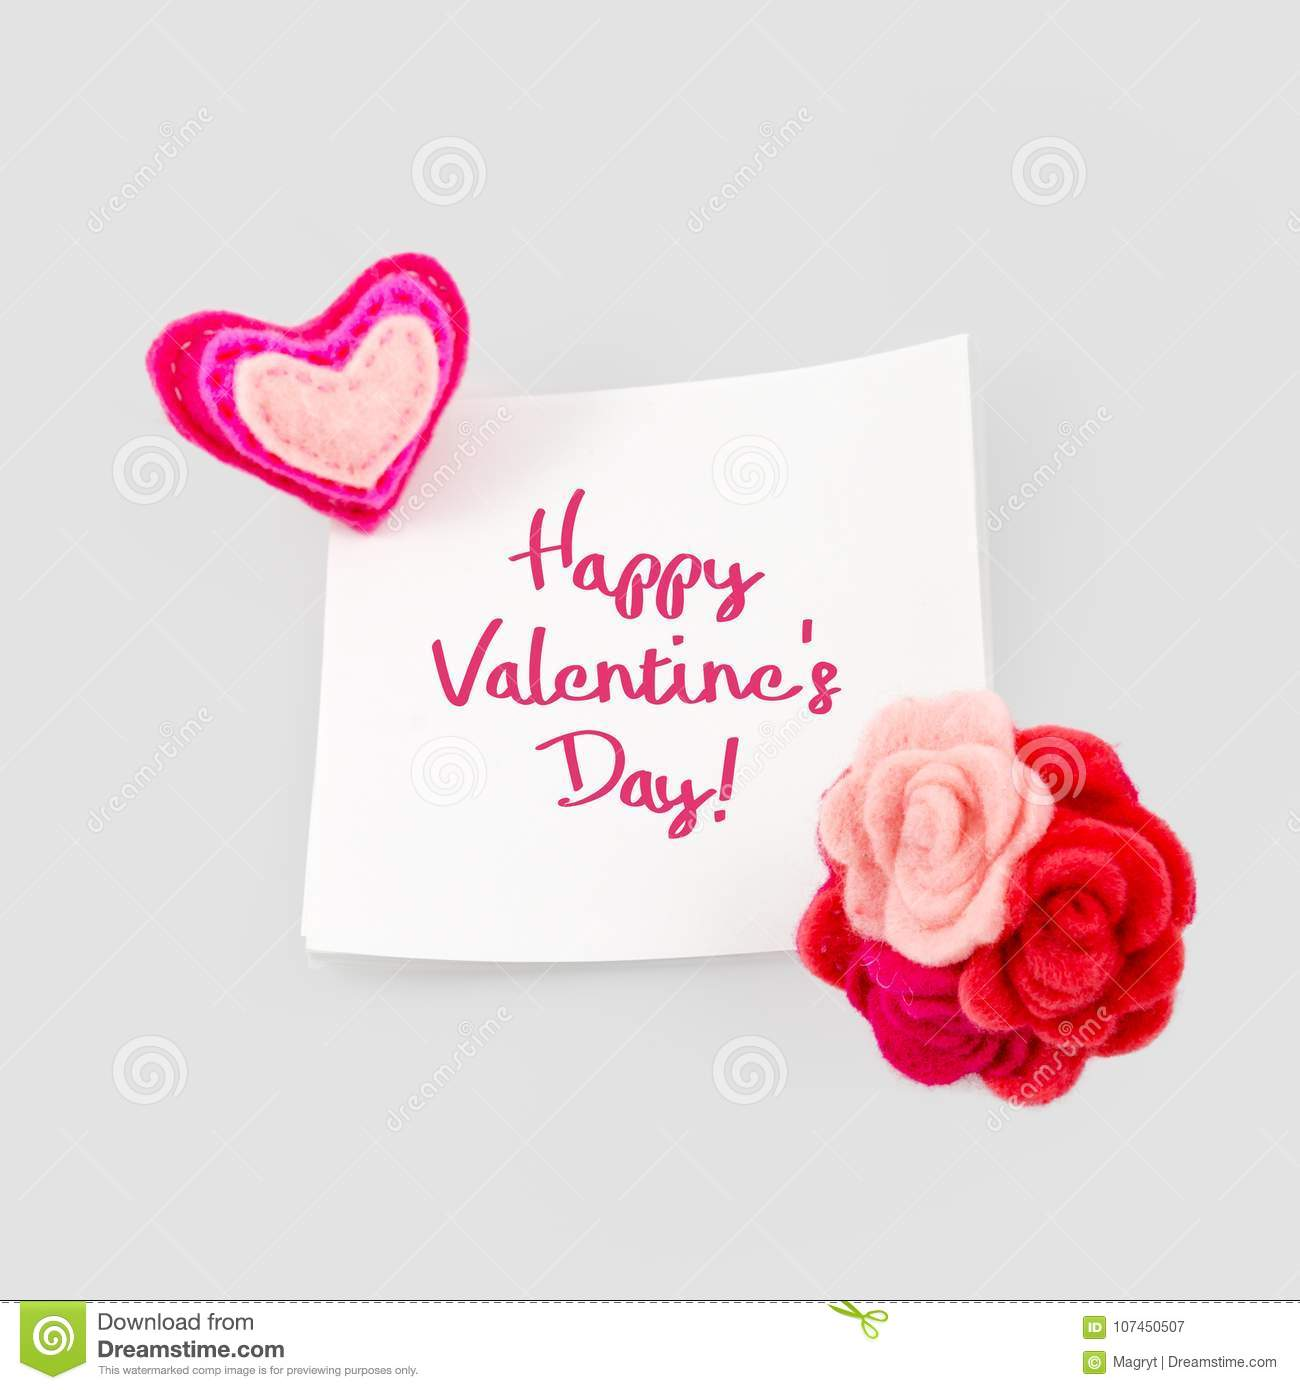 Happy valentines day greeting card heart and love message on stick download happy valentines day greeting card heart and love message on stick note paper m4hsunfo